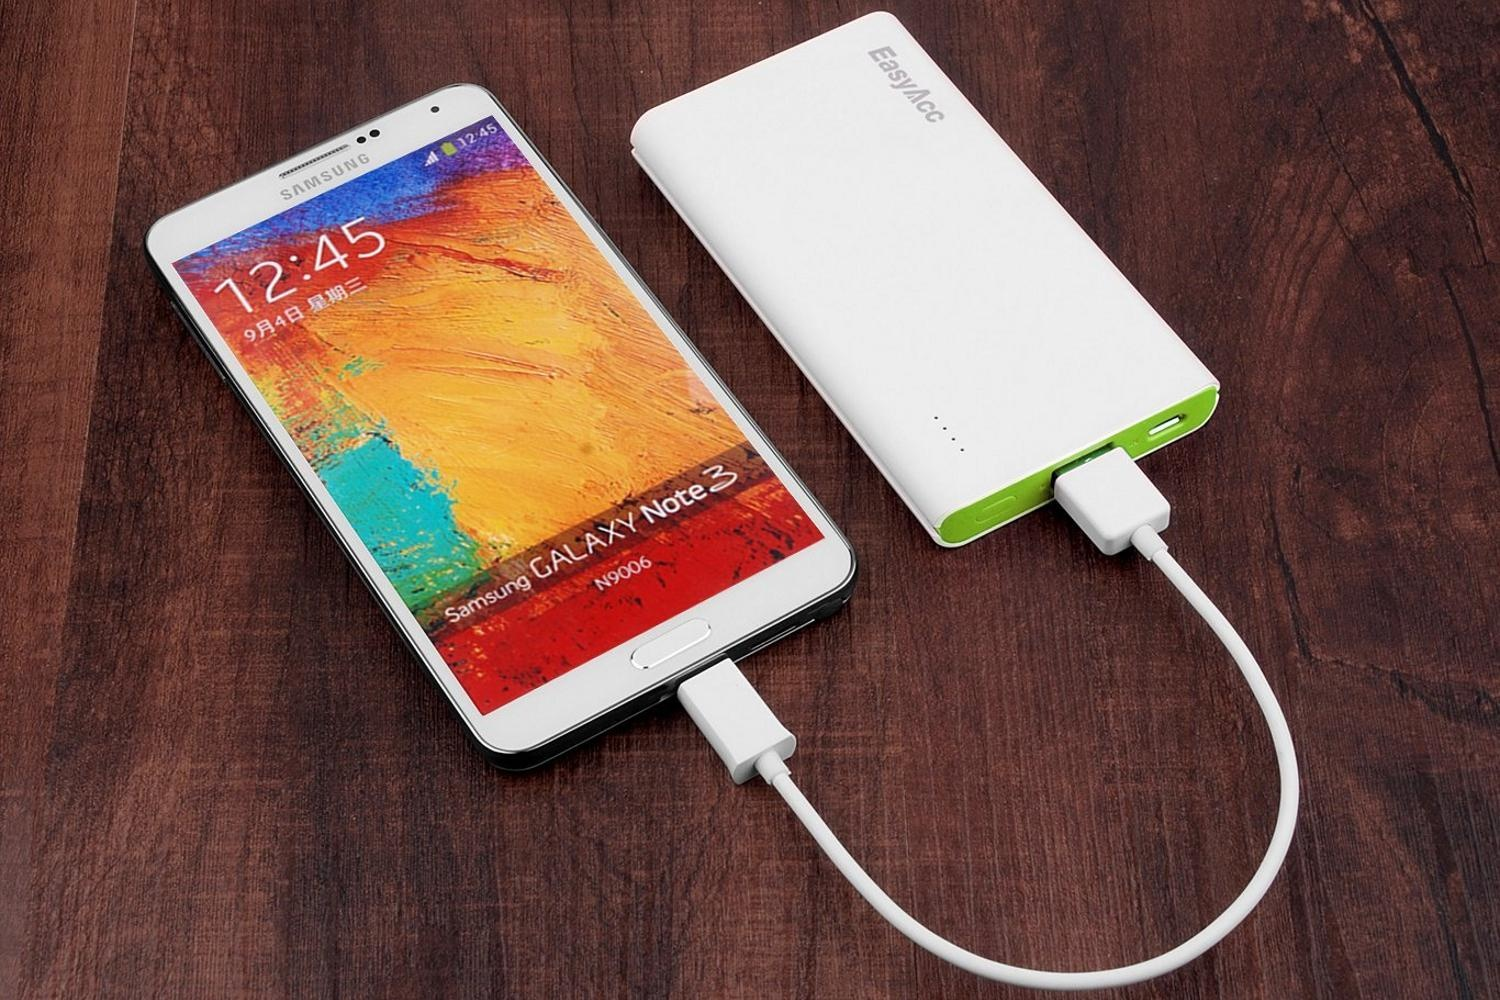 Image from digitaltrends.com